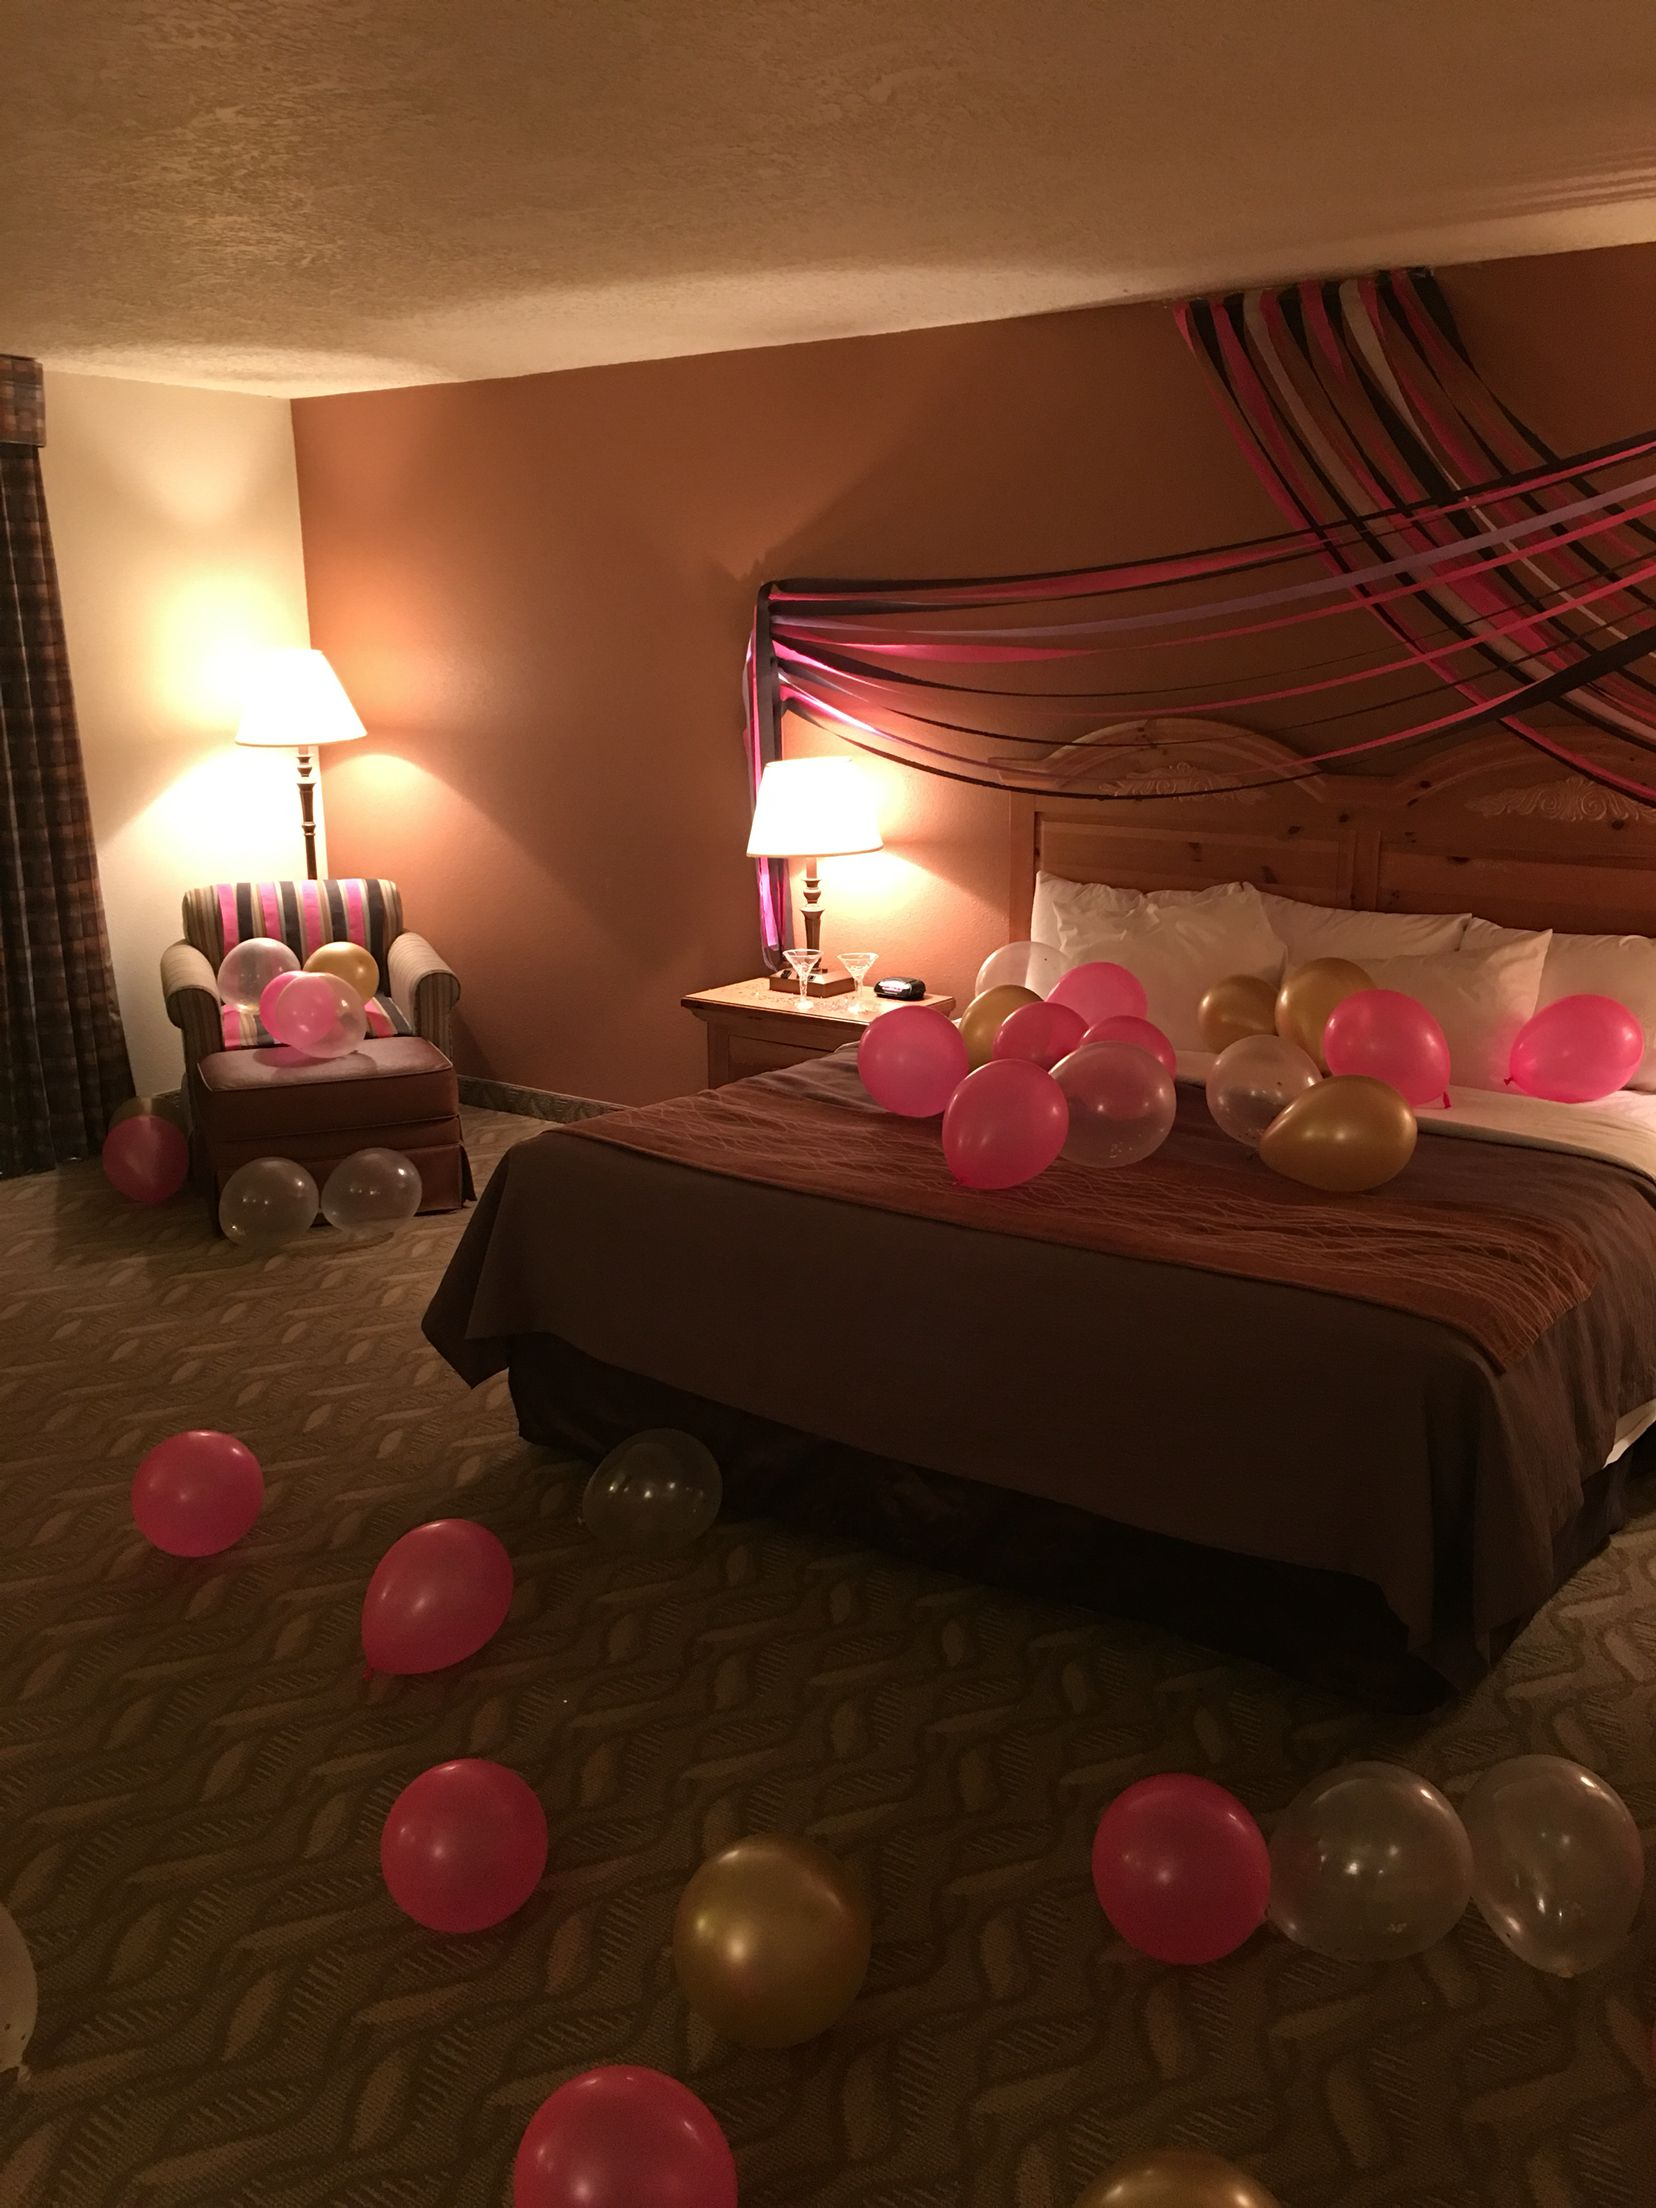 Surprise Birthday Hotel Decor For My Best Friend